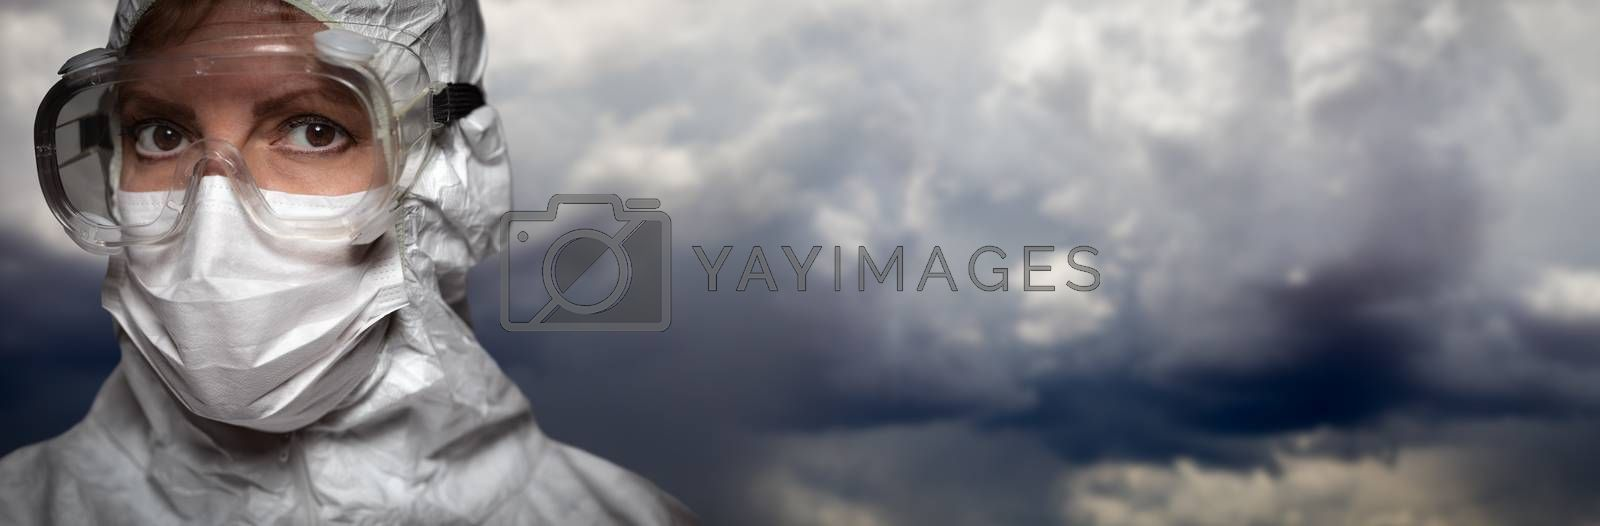 Doctor or Nurse Wearing Personal Protective Equipment Over Stormy Clouds Banner.